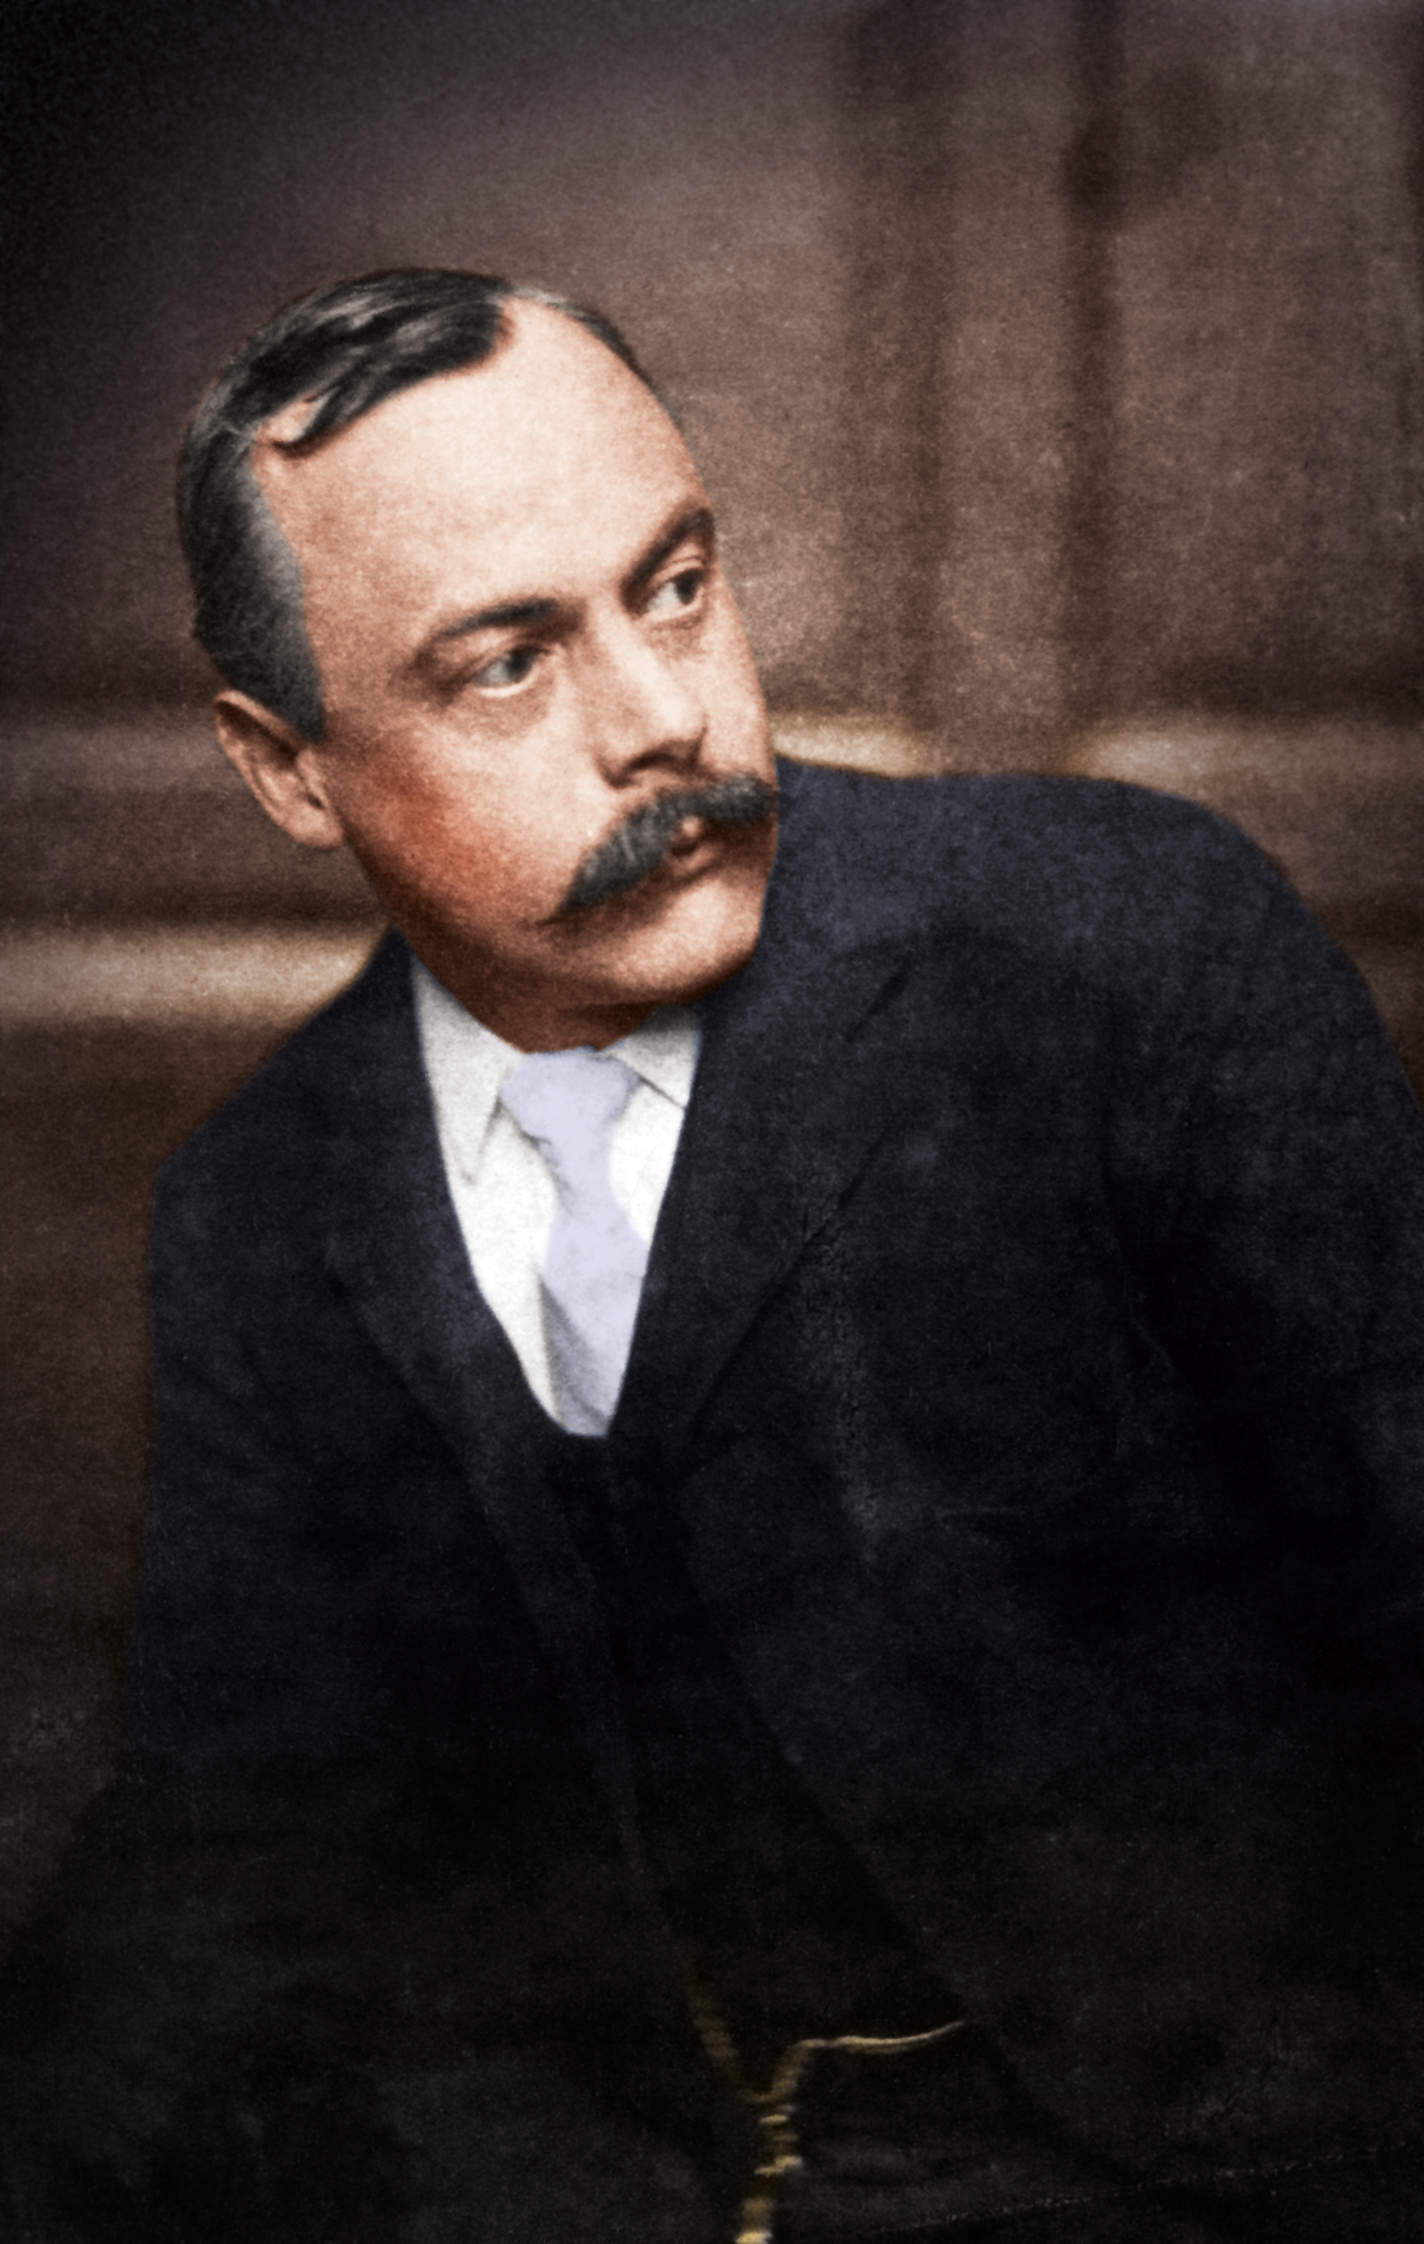 Dark-hearted dreamer: the double life of Kenneth Grahame